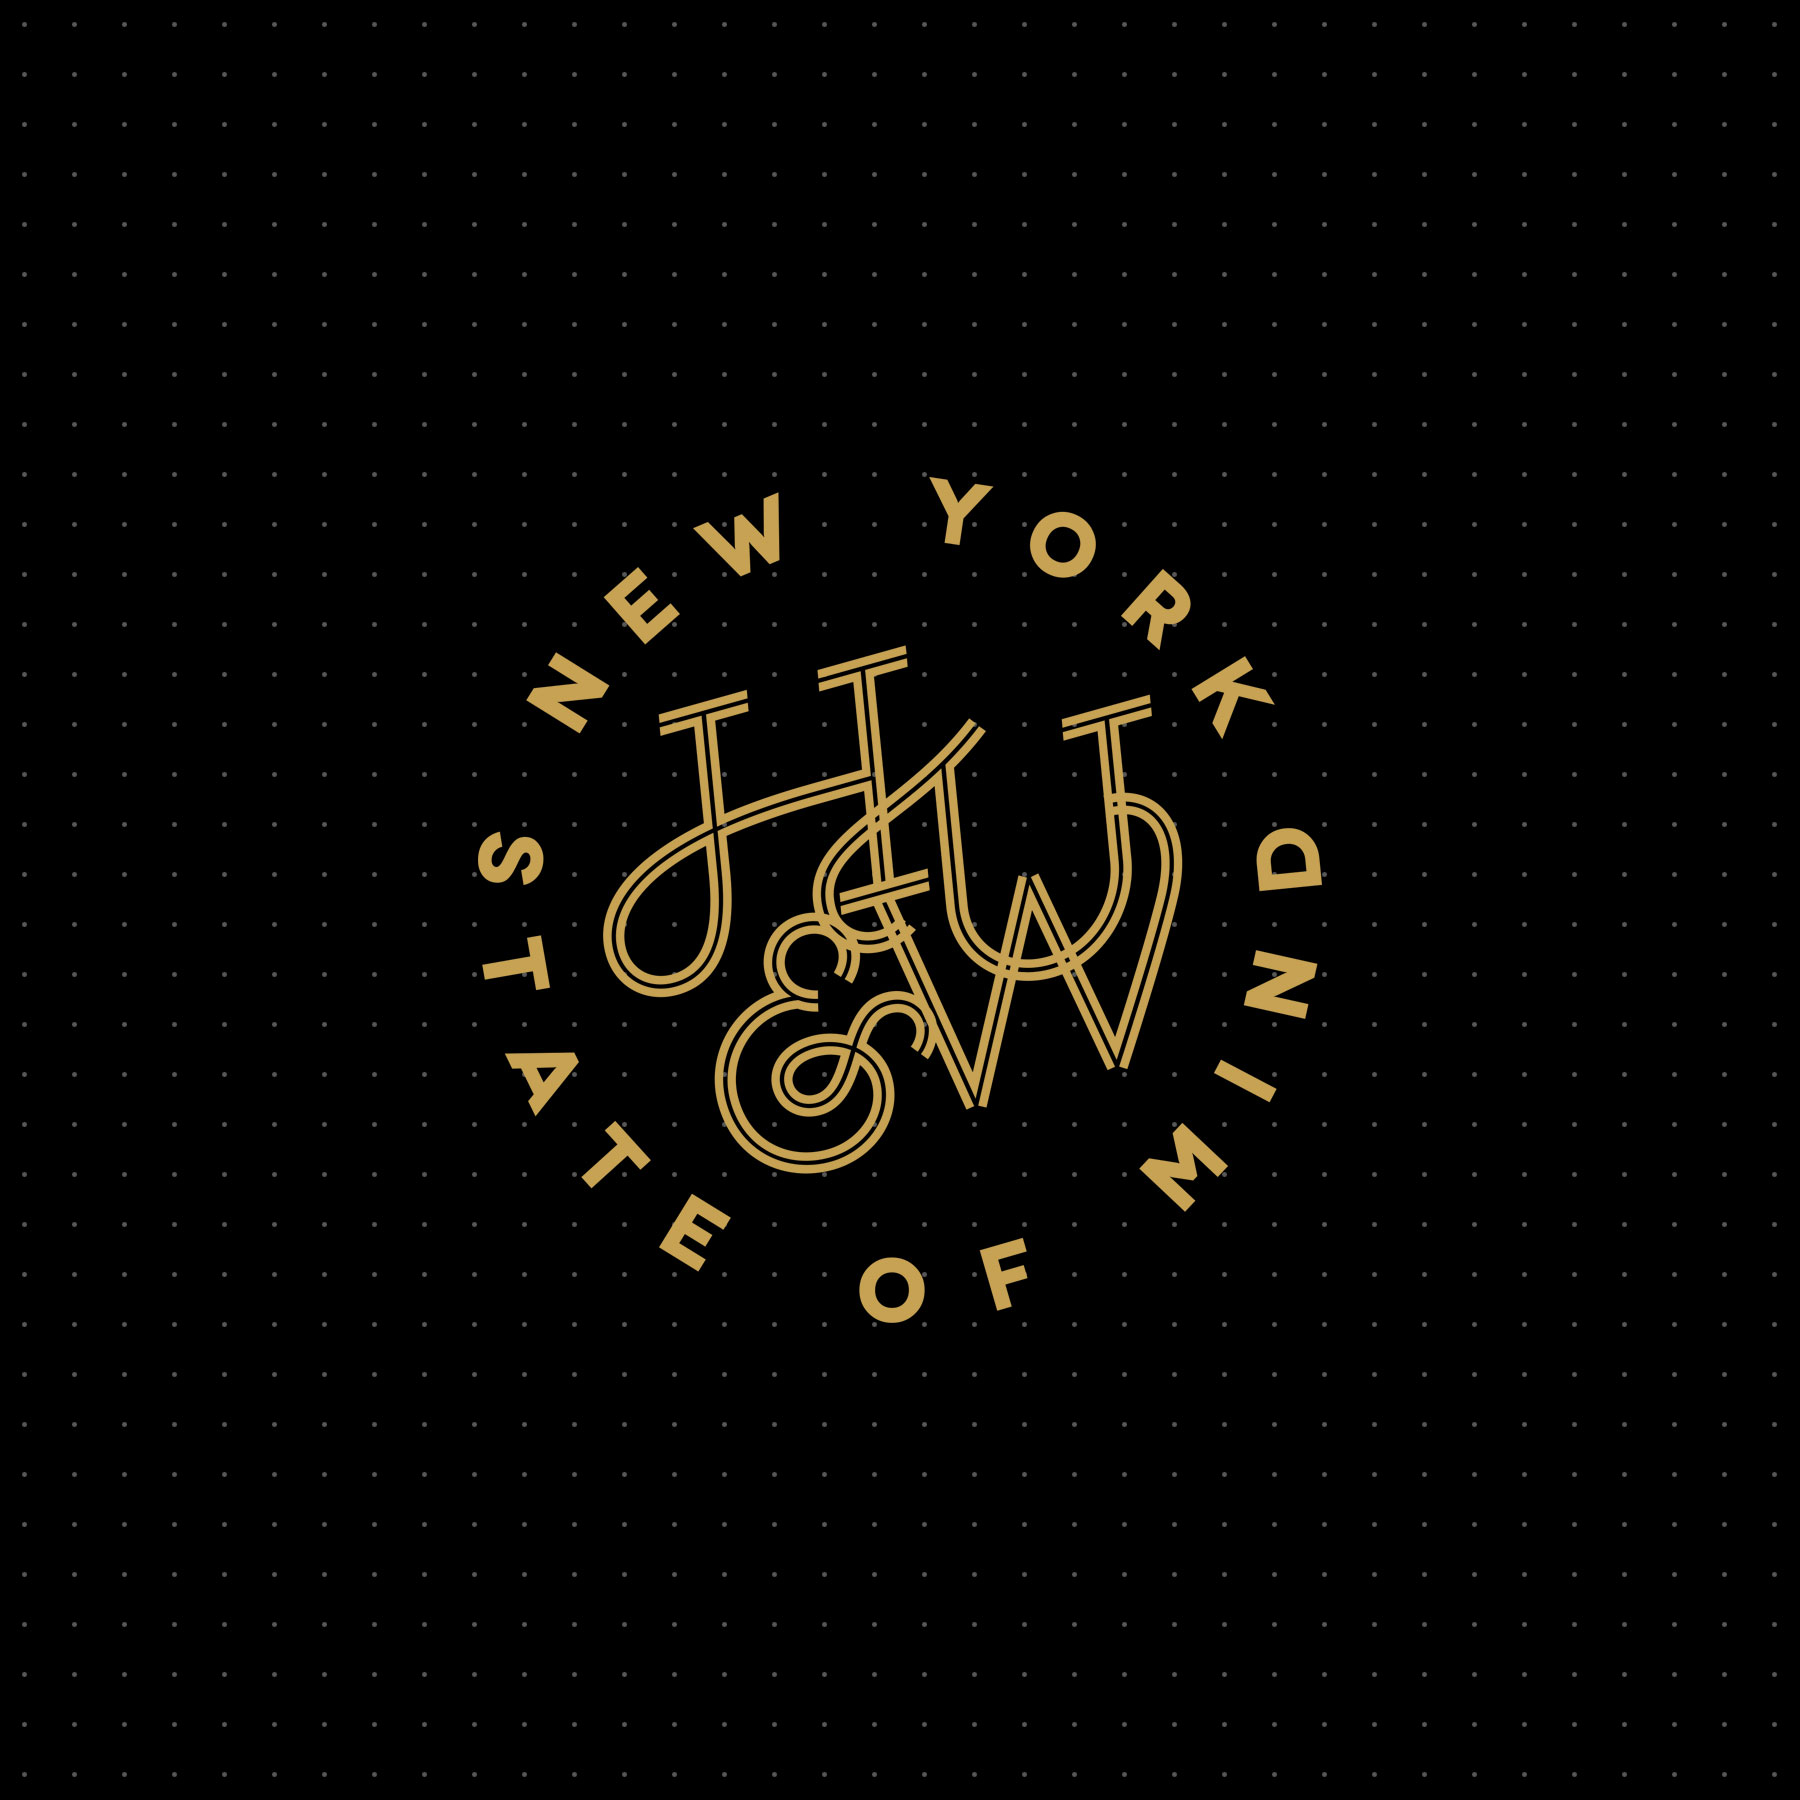 NY State of Mind logo